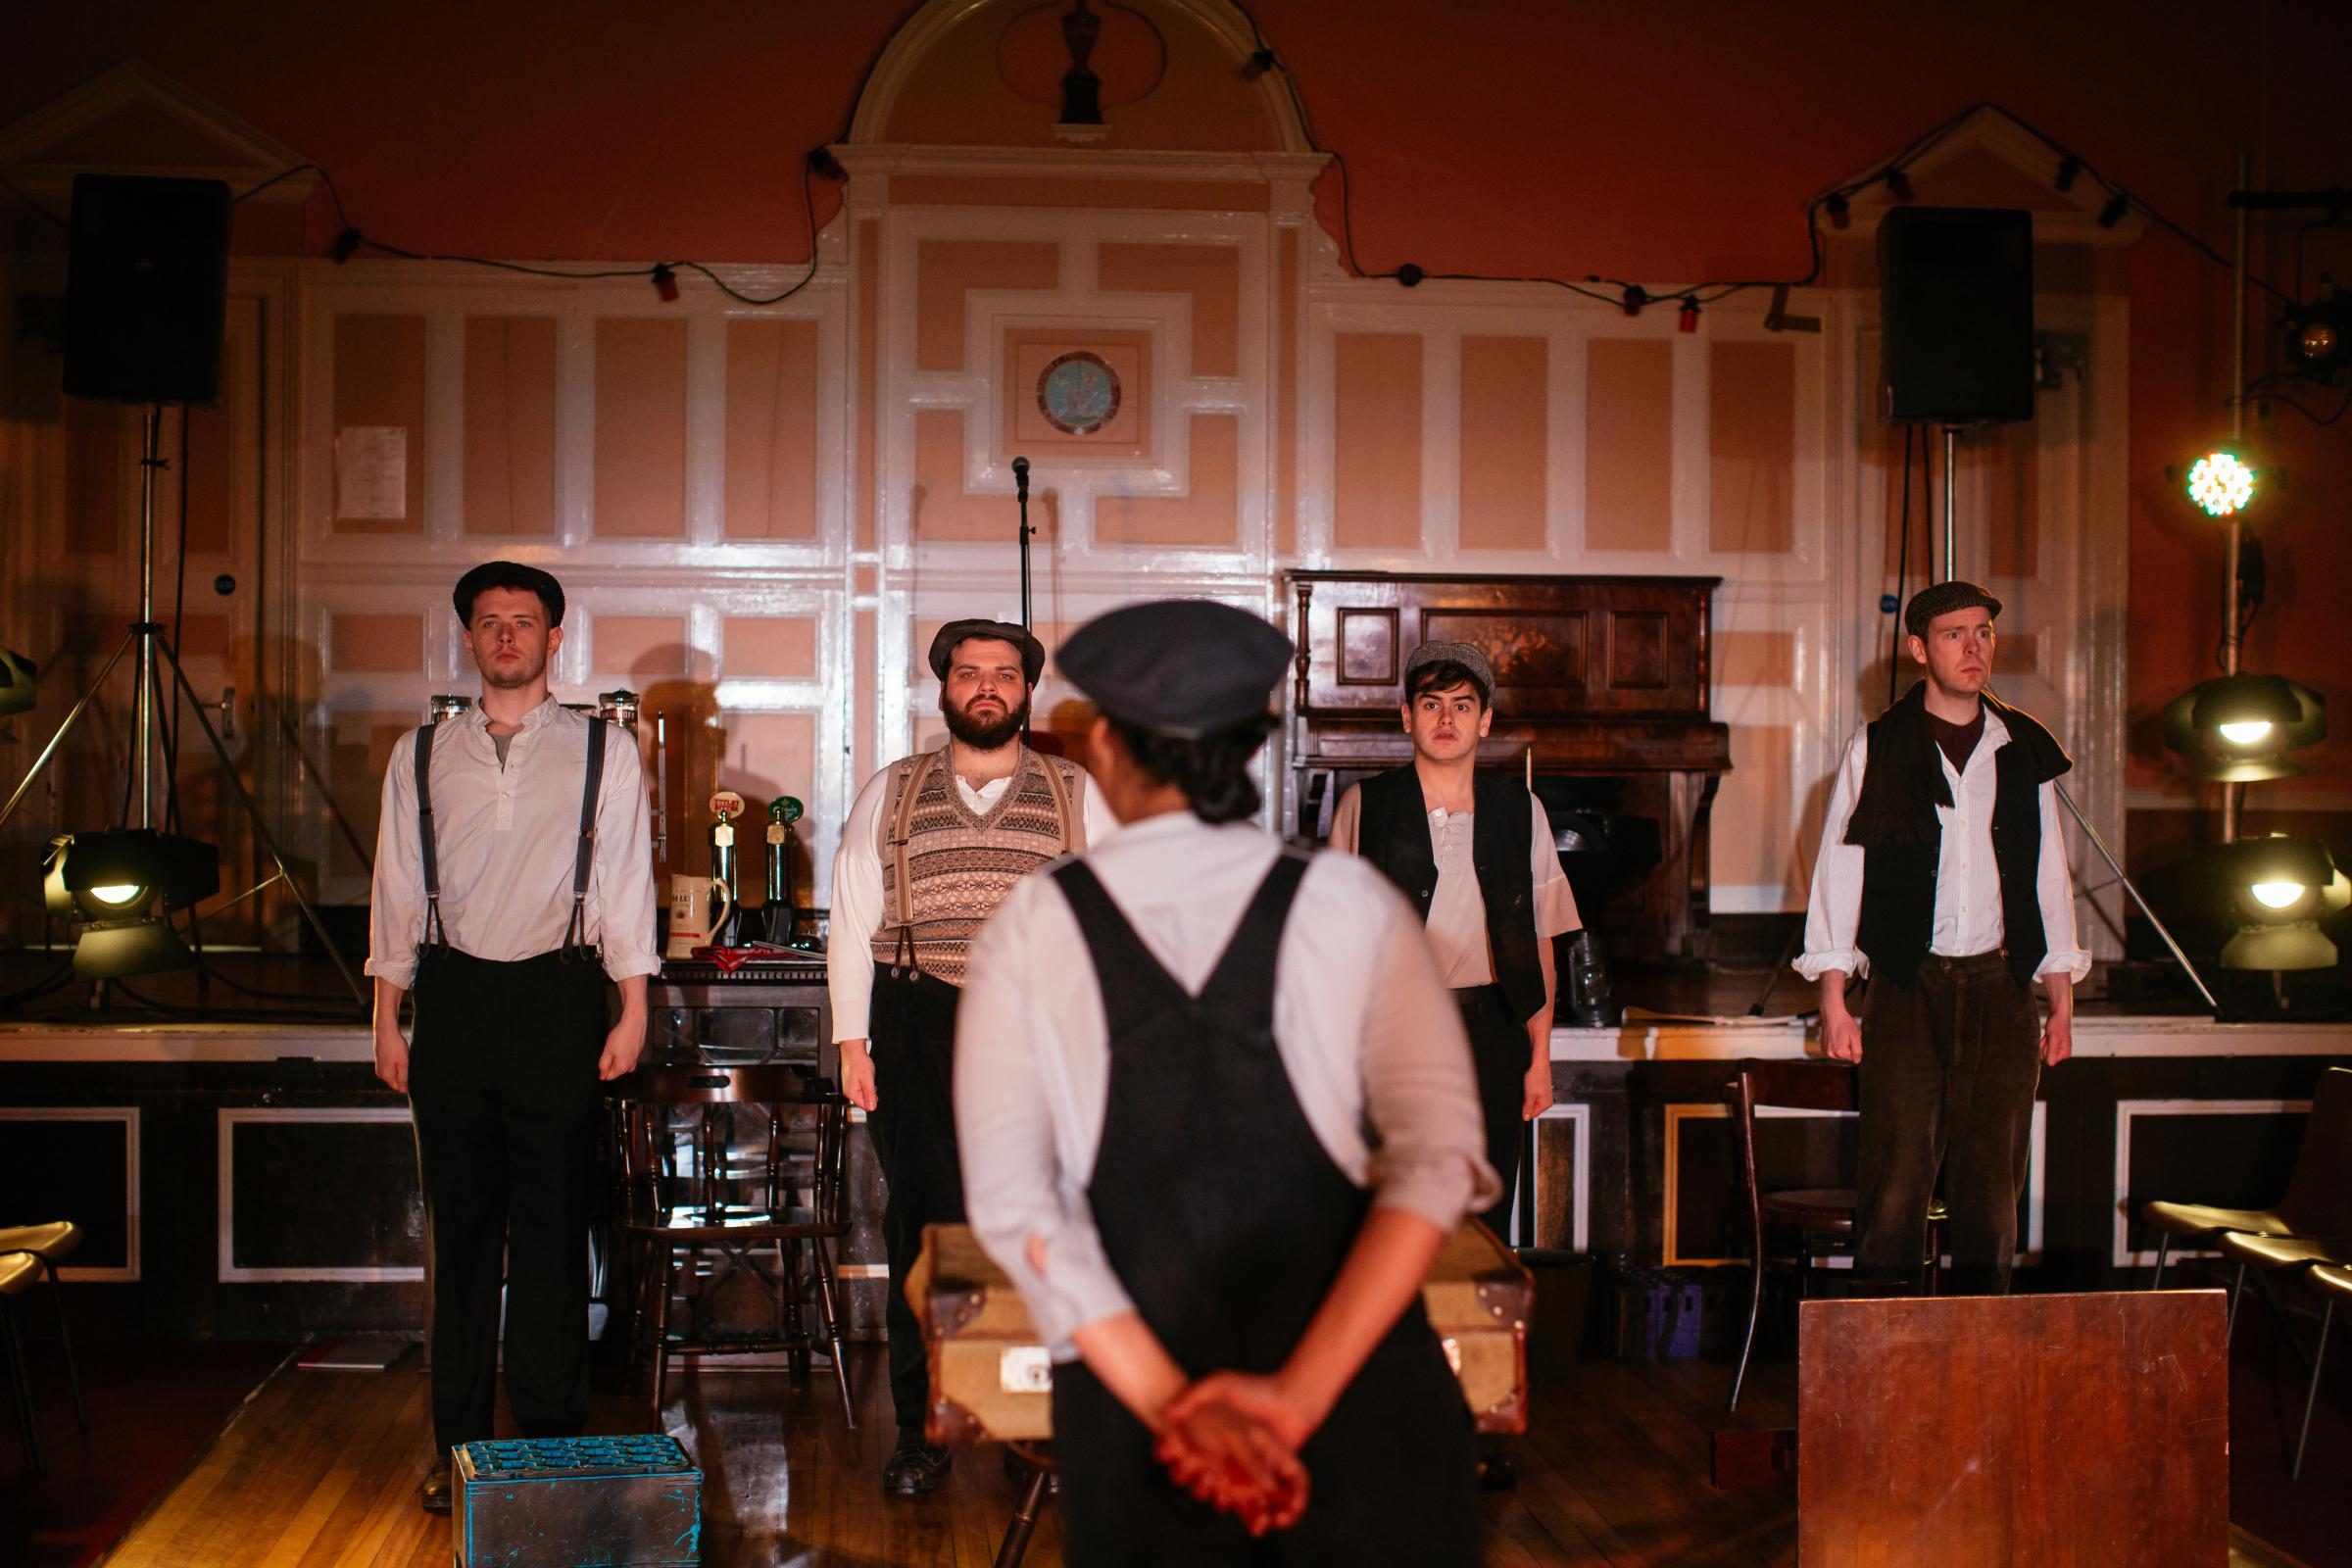 Robbie Gordon, Josh Whitelaw, Jamie Marie Leary, Cristian Ortega and Martin Donaghy in 549-Scots of the Spanish Civil War. Photography by Jassy Earl